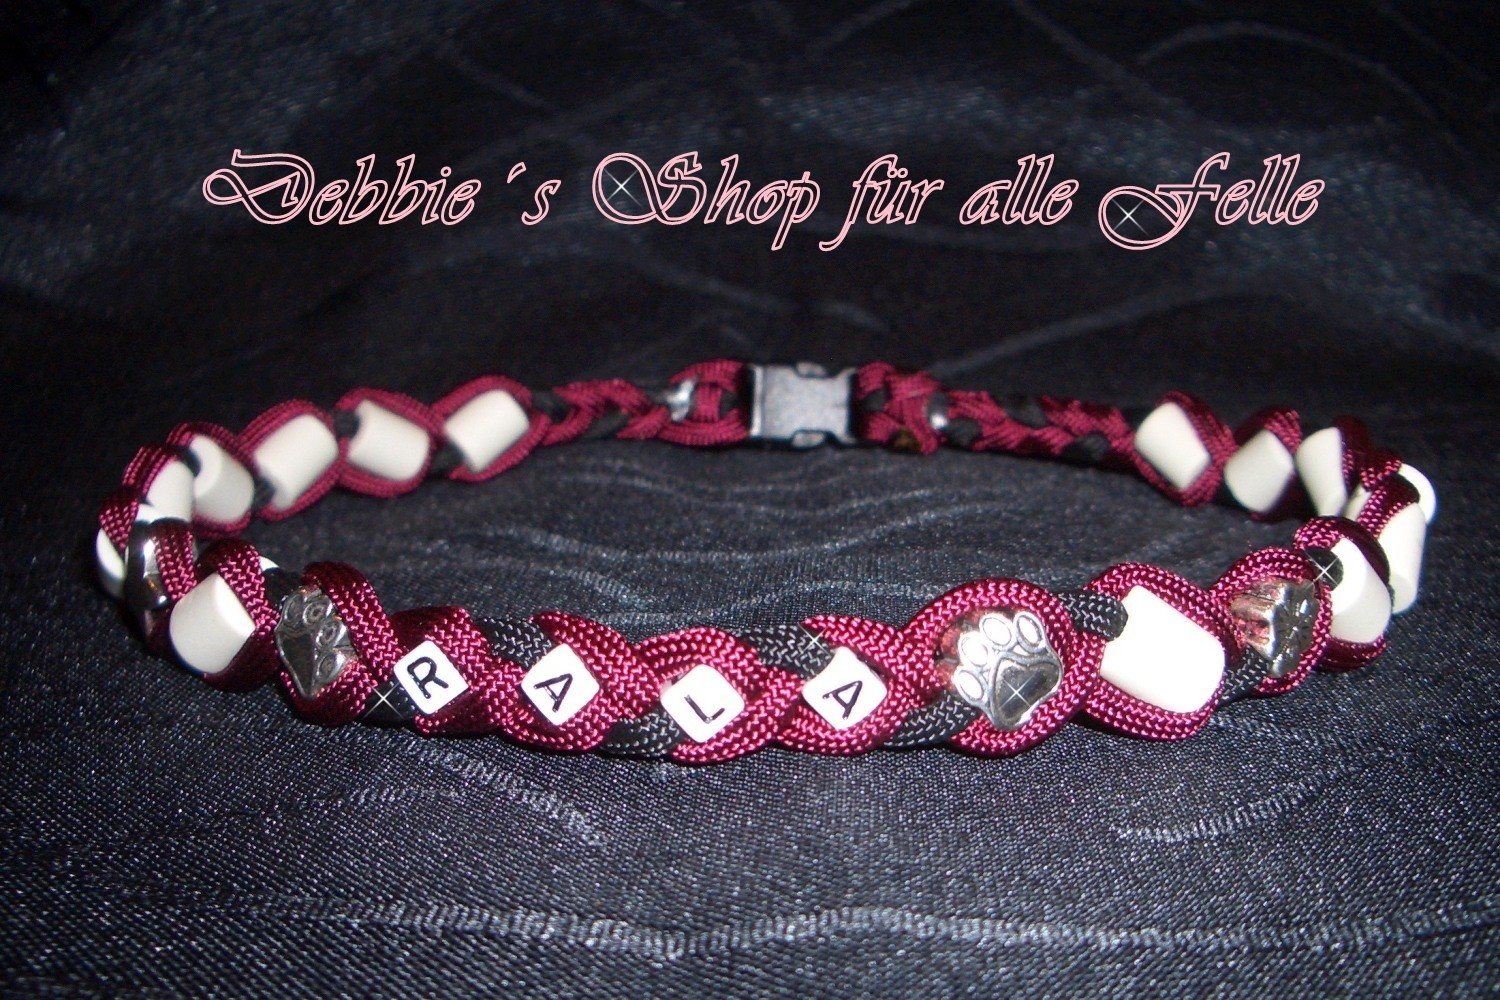 burgundy / black zzgl. Namen & Beads